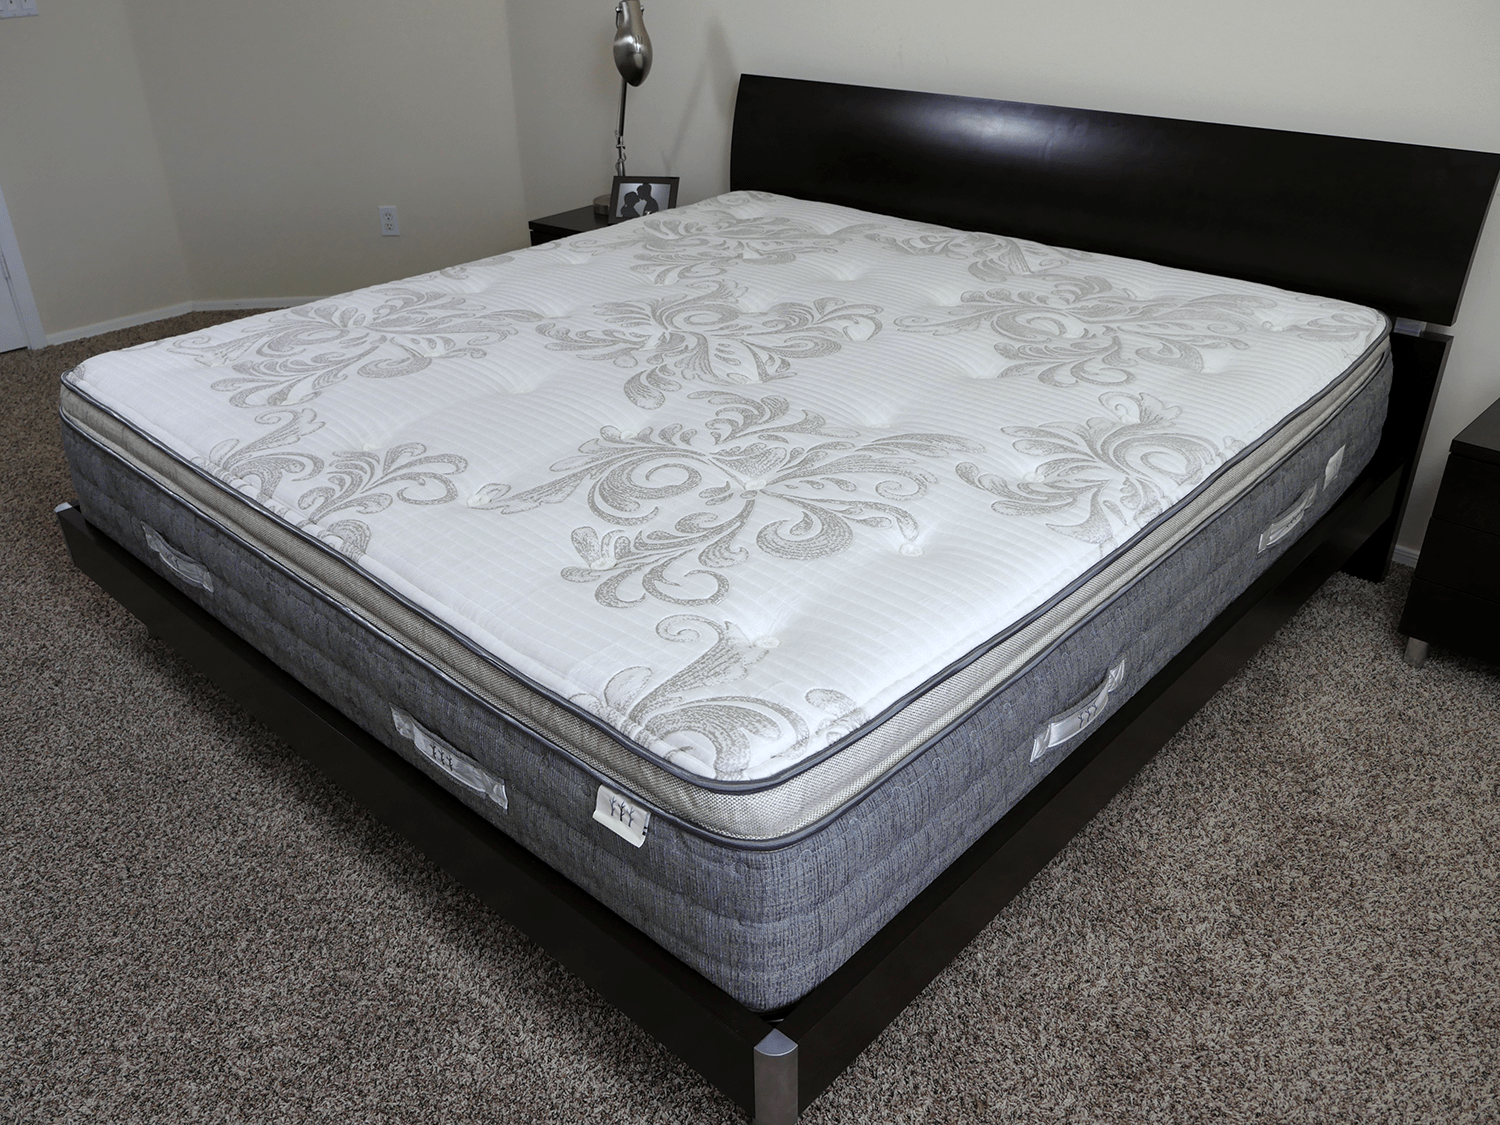 brentwood home sequoia mattress review sleepopolis